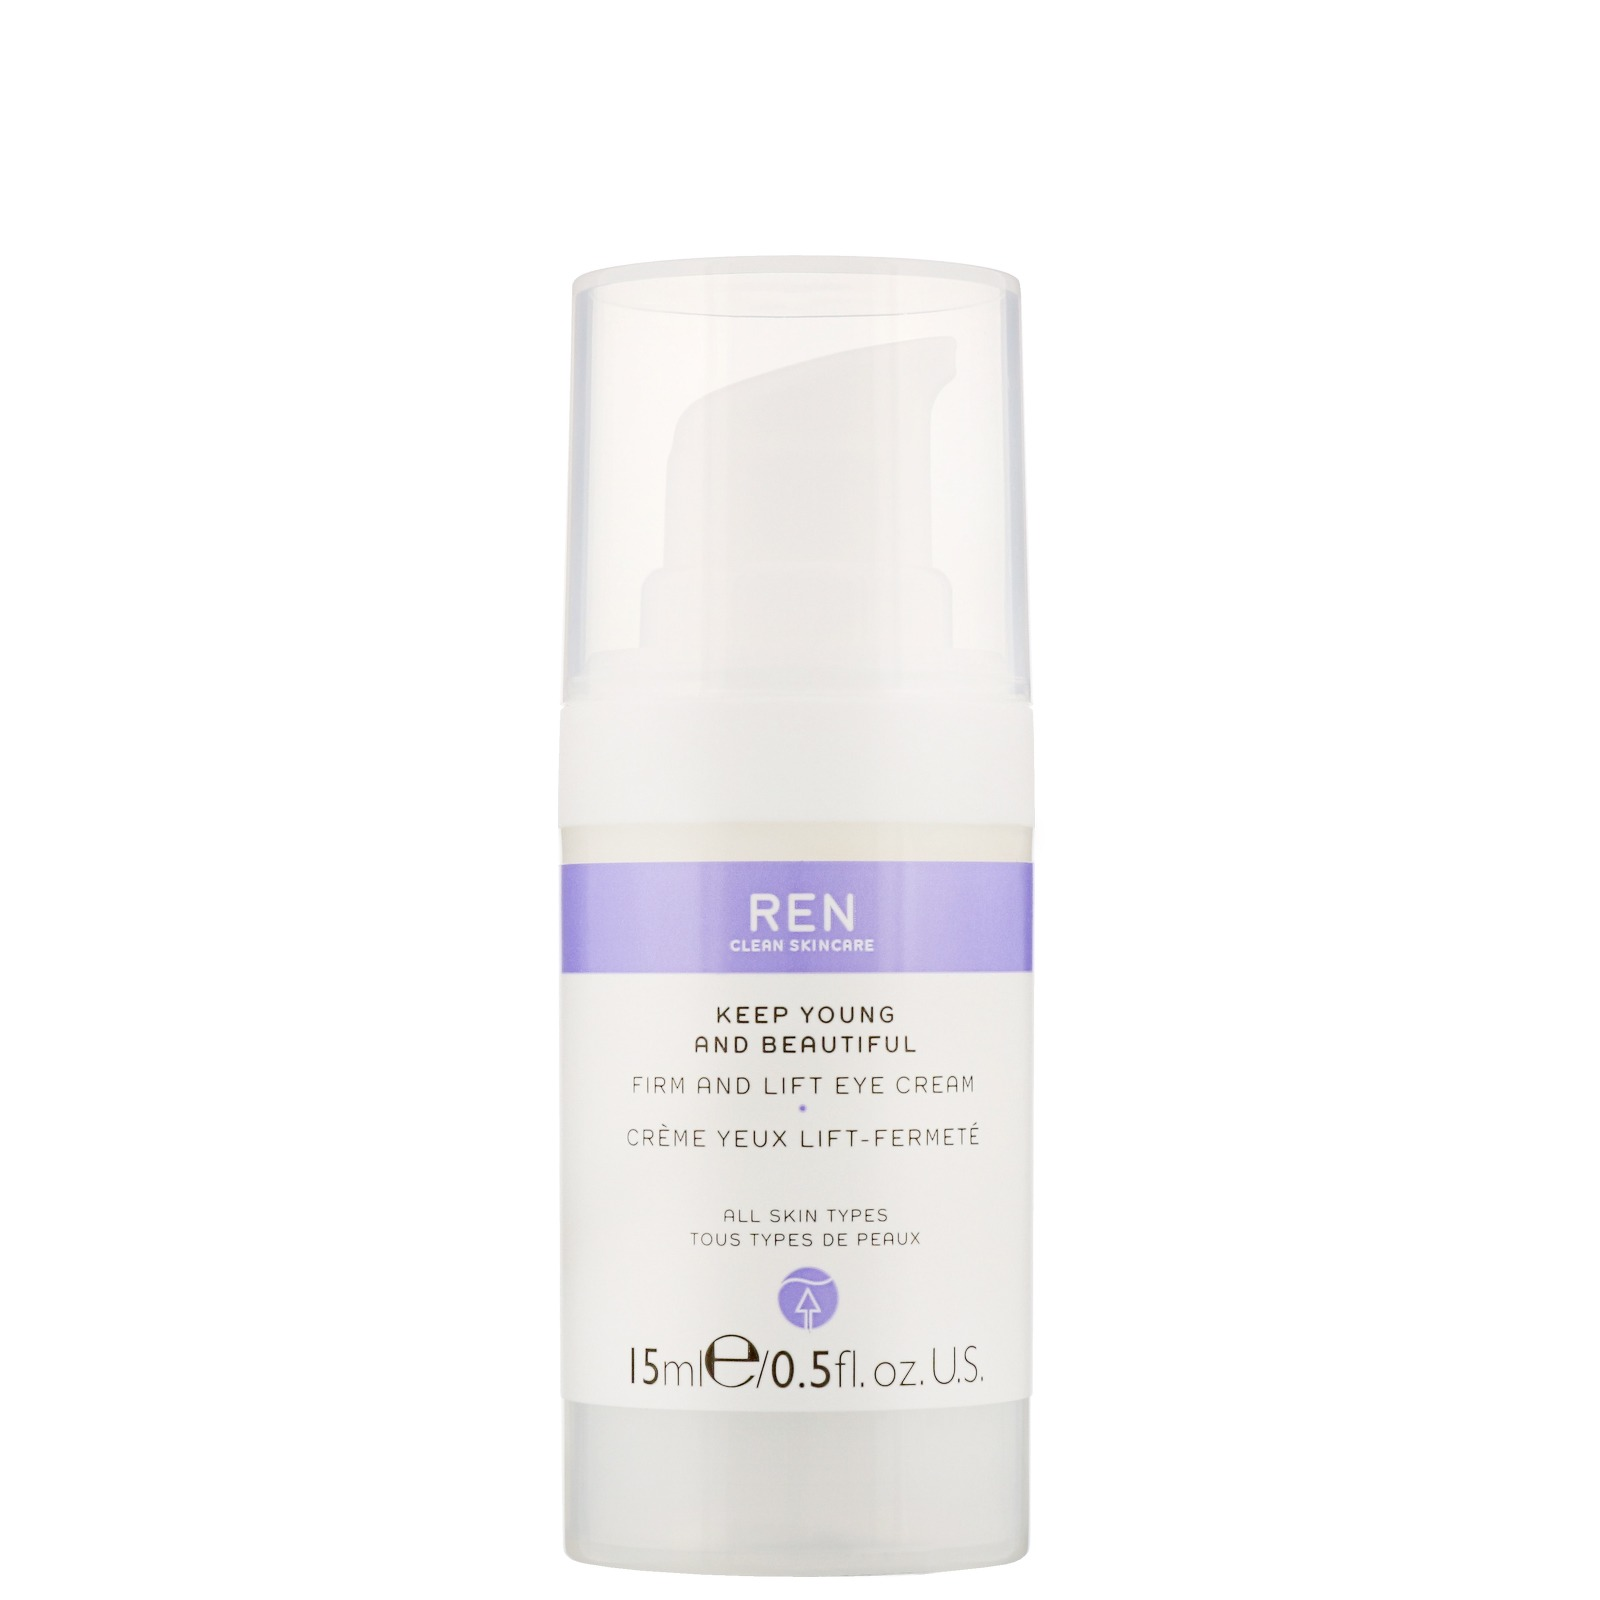 REN Clean Skincare Face Keep Young and Beautiful Firm and Lift Eye Cream 15ml / 0.5 fl.oz.